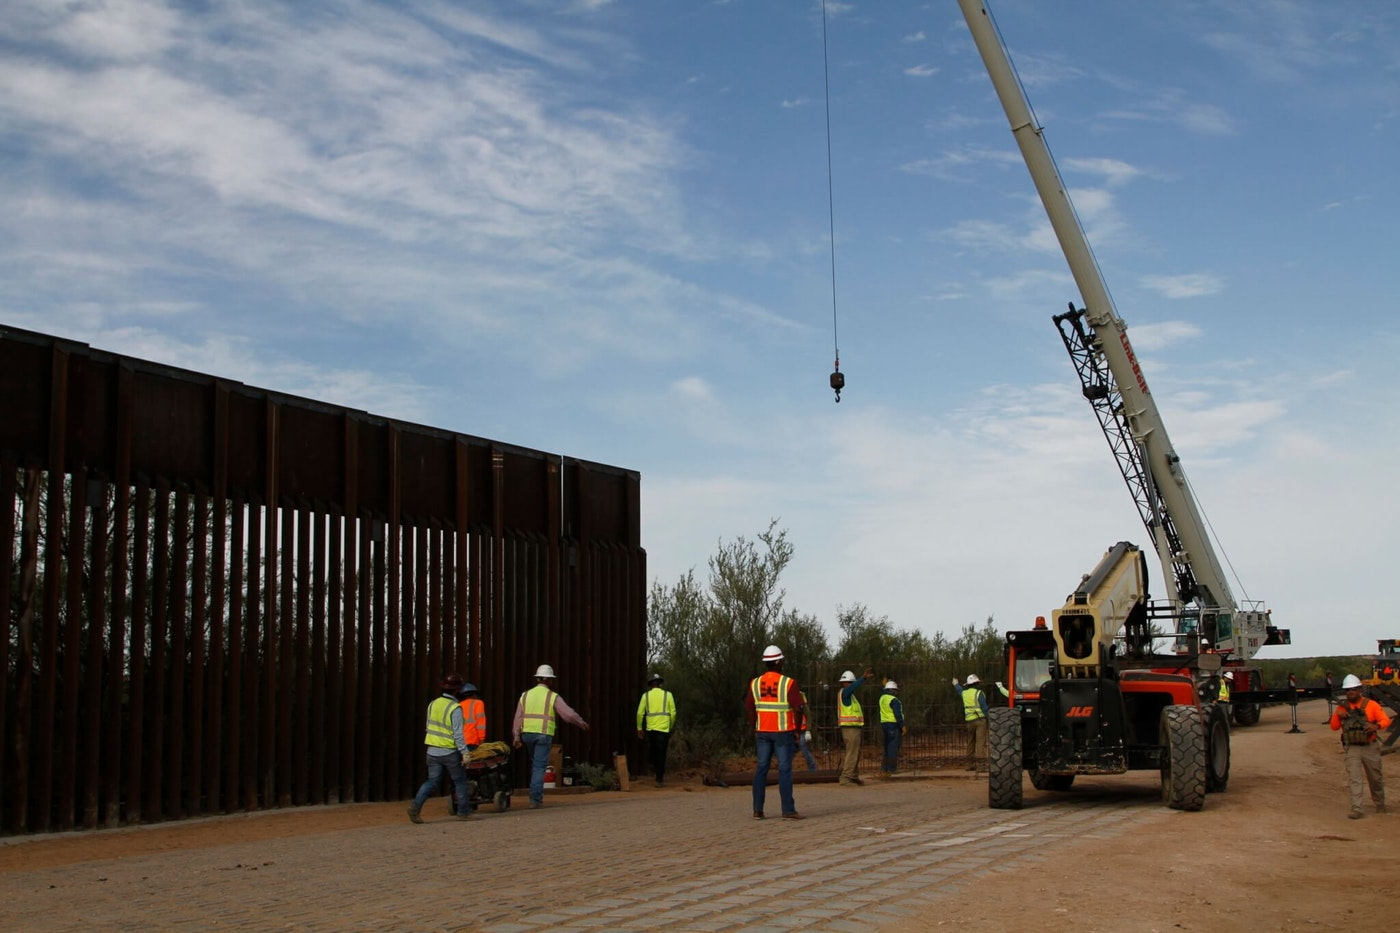 FILE - In this Aug. 23, 2019 file photo, workers break ground on new border wall construction about 20 miles west of Santa Teresa, N.M. Construction on a Pentagon-funded portion of the border wall began near Yuma, Arizona, this week, just as federal authorities announced they are diverting even more defense funds for wall projects. Crews began constructing a 30-foot steel fence along the Colorado River this week. (AP Photo/Cedar Attanasio, File)